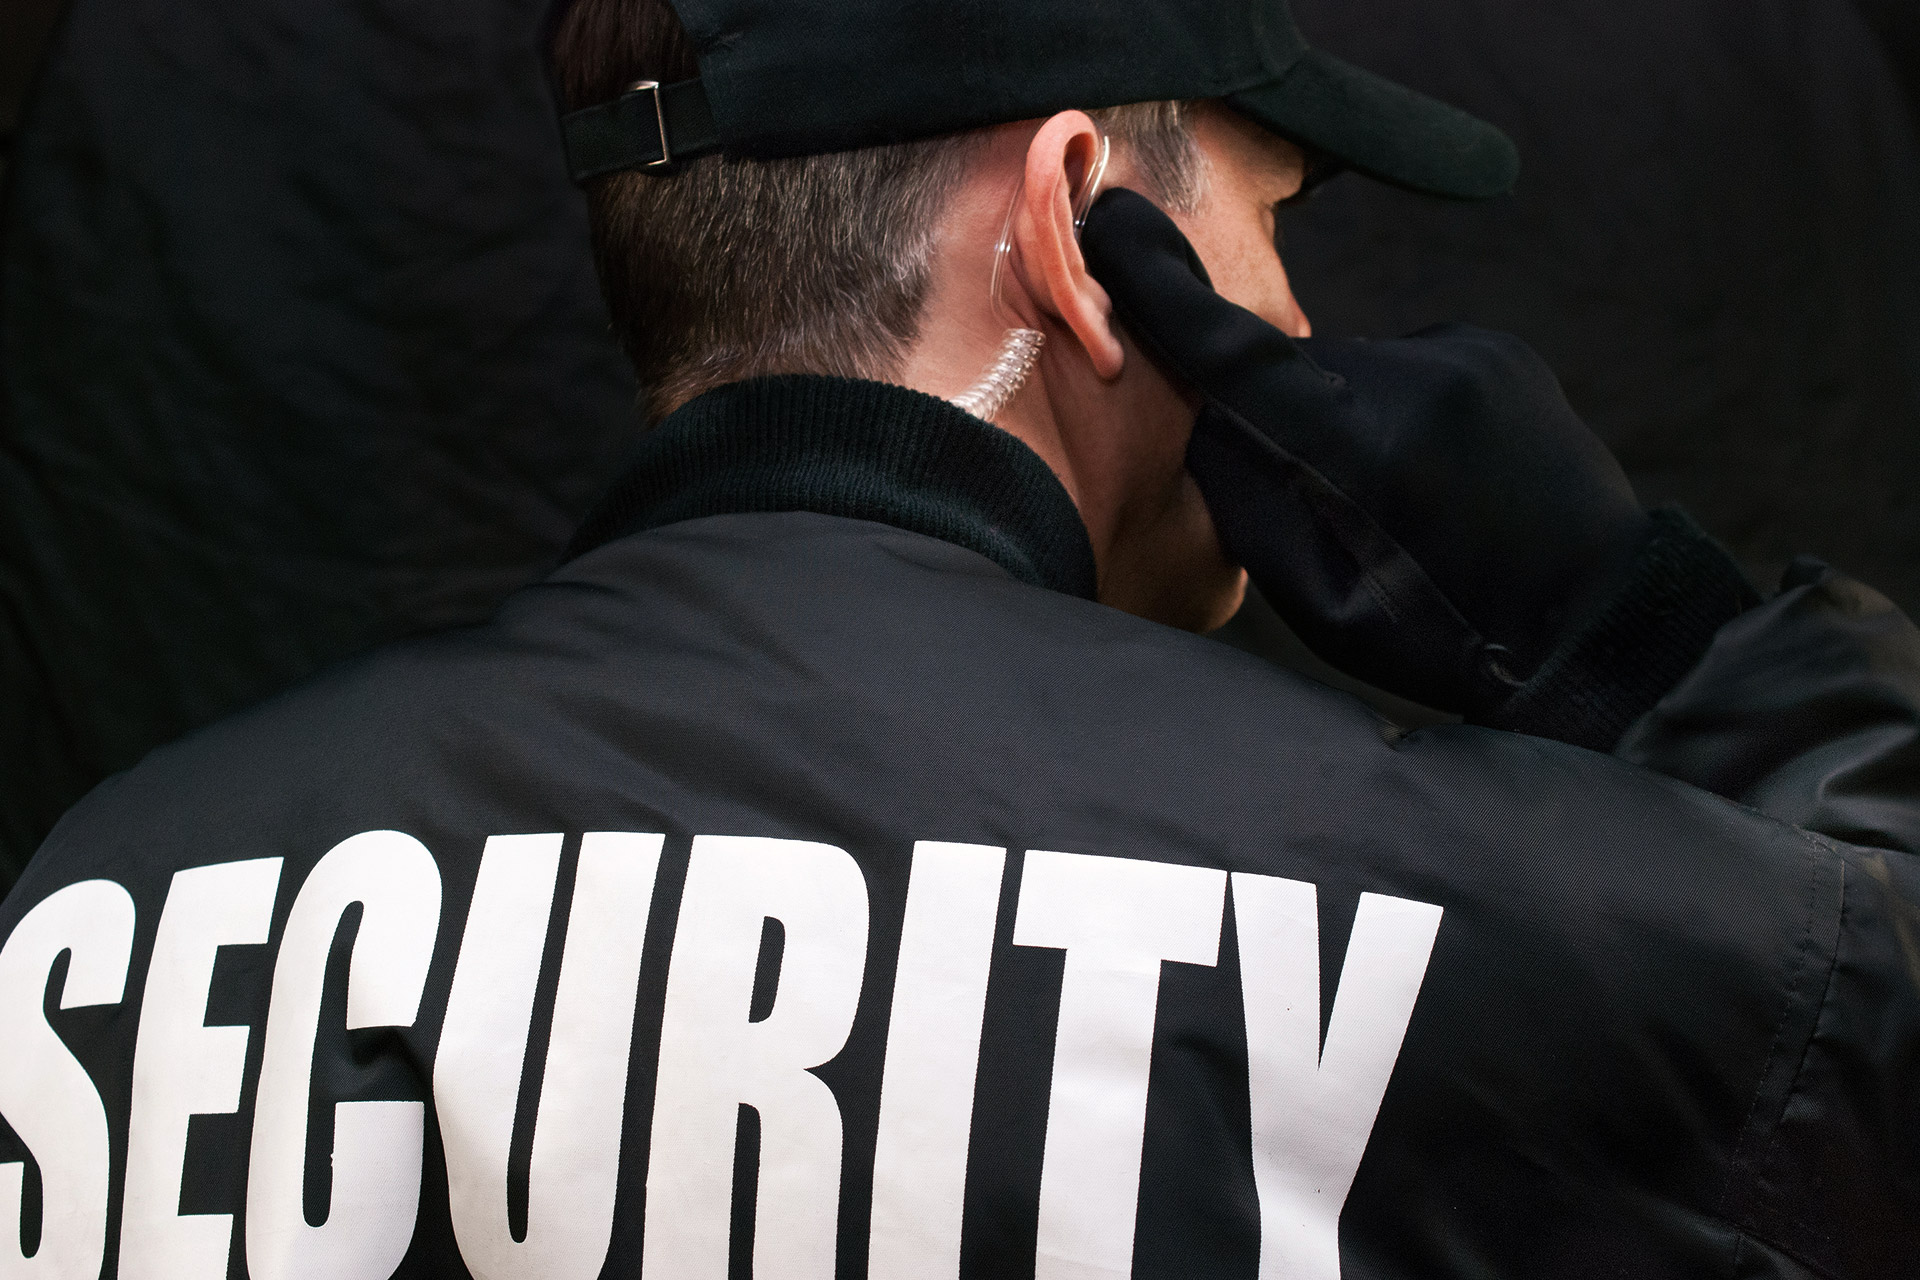 back of a security guard in uniform listening on an earpiece